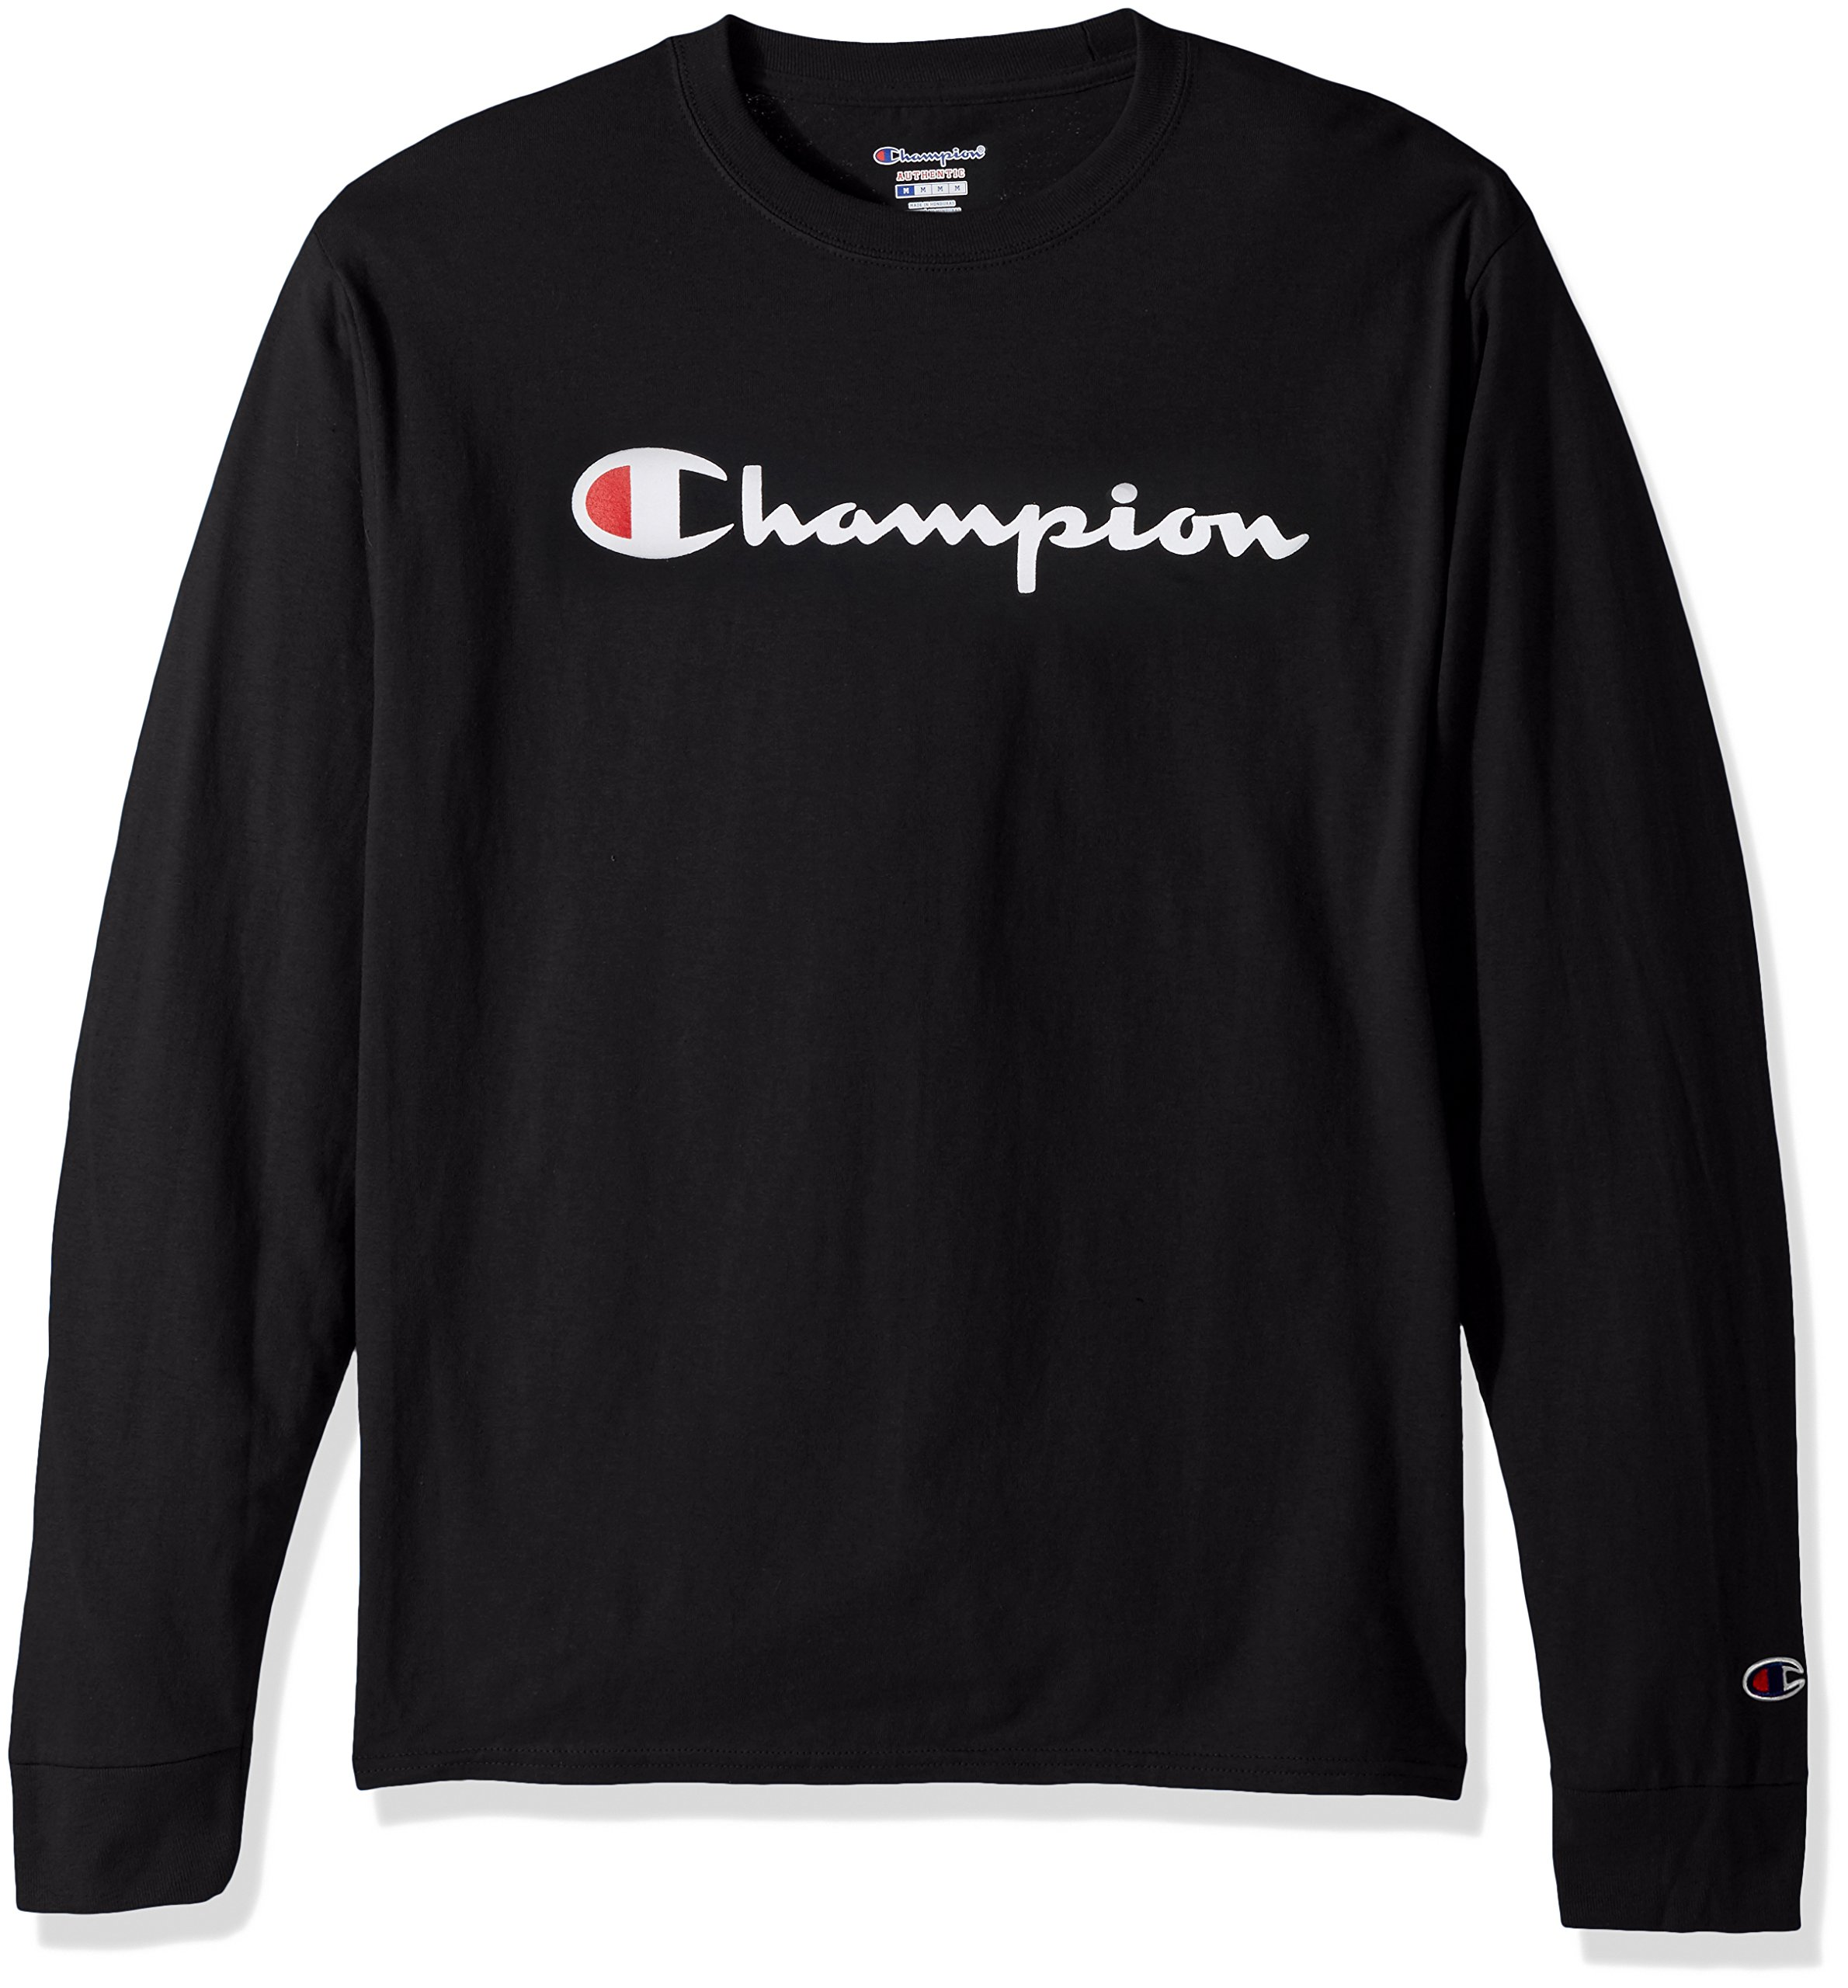 2376cd53 Galleon - Champion LIFE Men's Cotton Long Sleeve Tee, Black/Patriotic  Script, Small